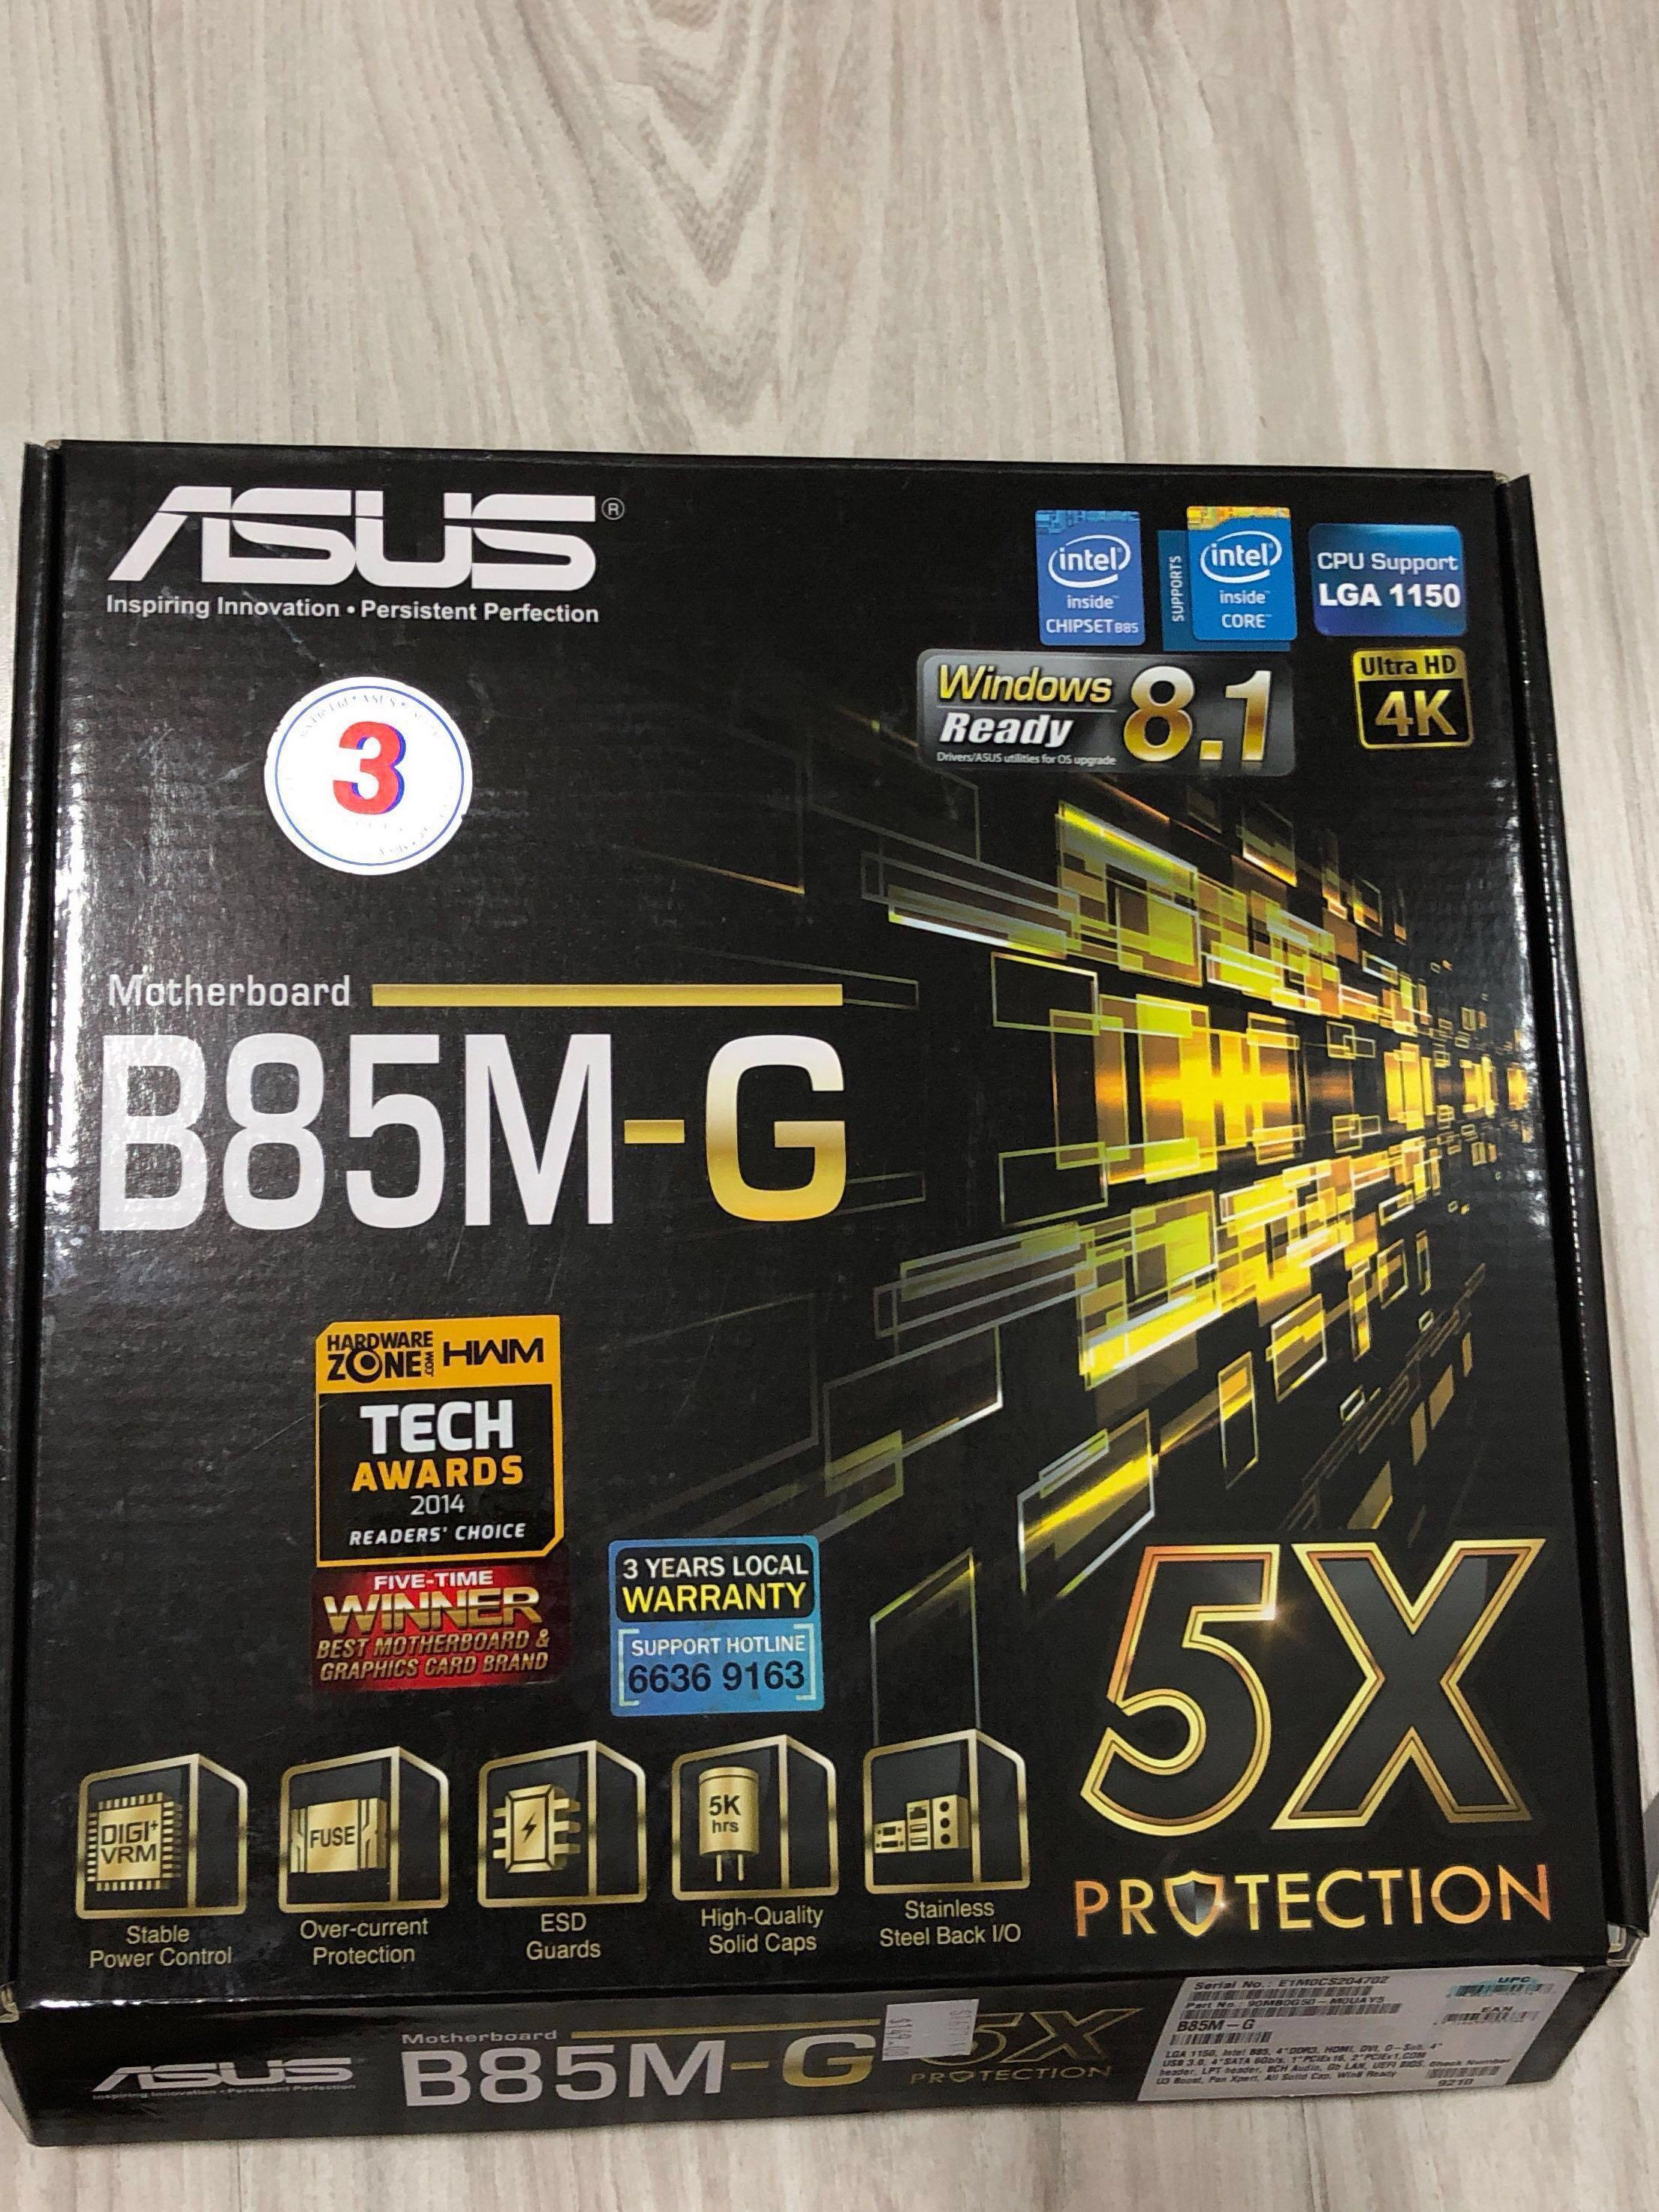 ASUS B85M-G motherboard for intel chipset, Electronics